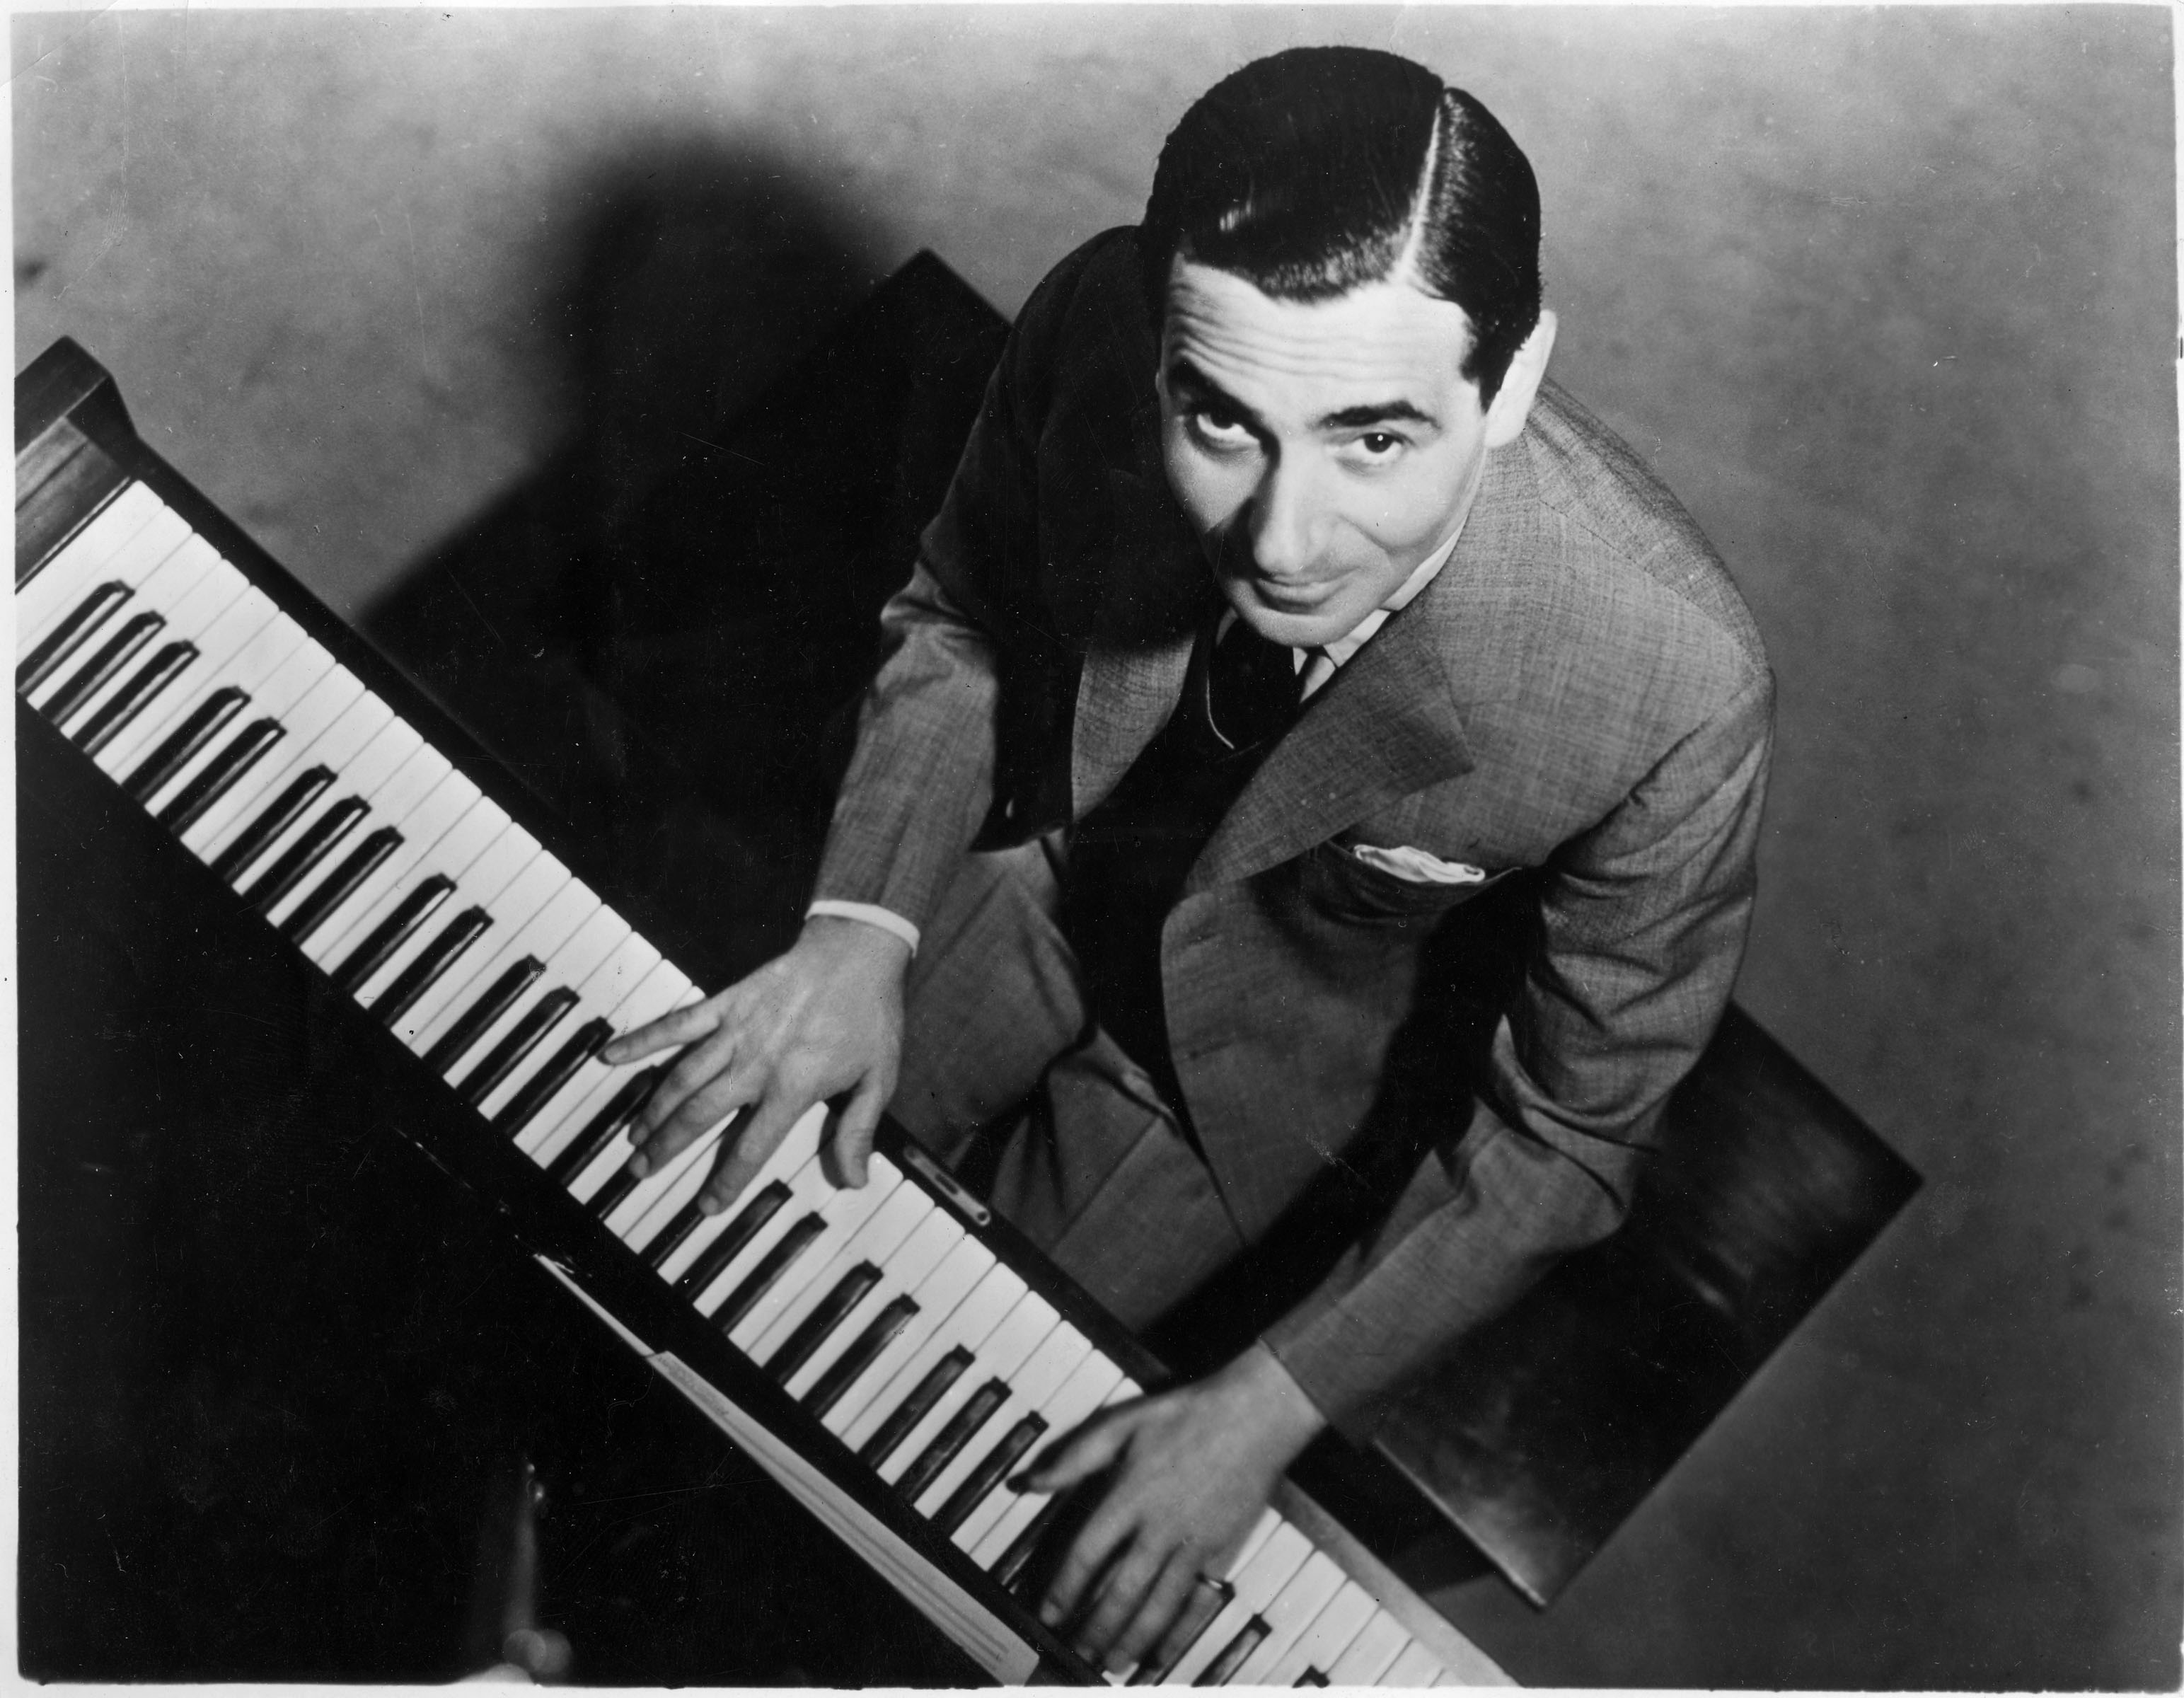 Young Irving Berlin Puttin' on the Ritz